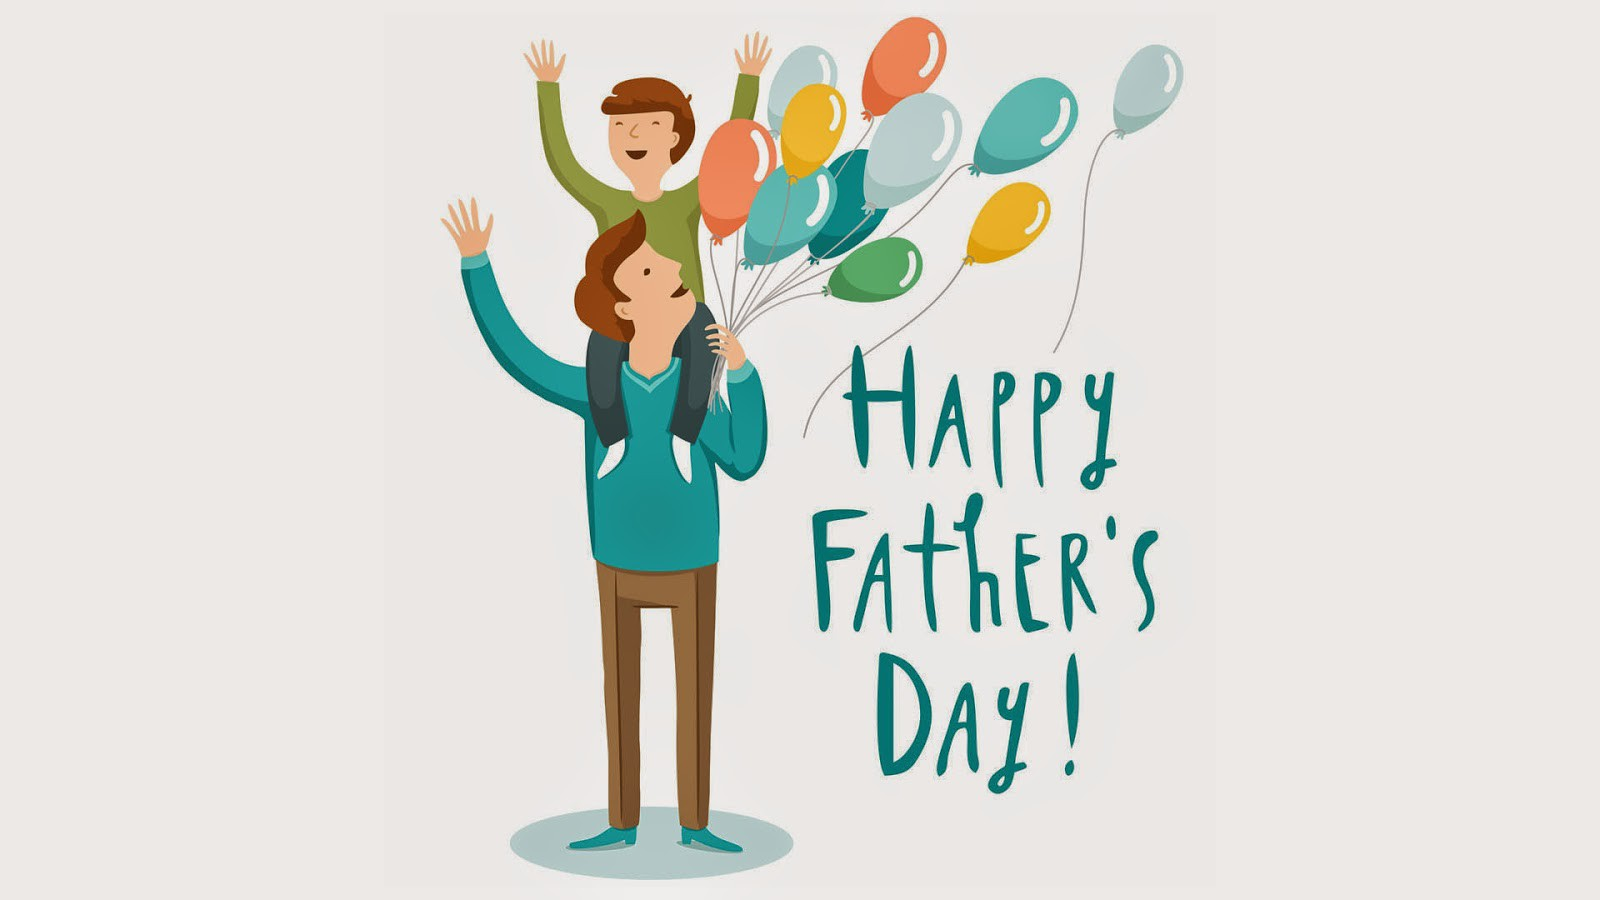 Happy Fathers Day Wallpapers download 1600x900